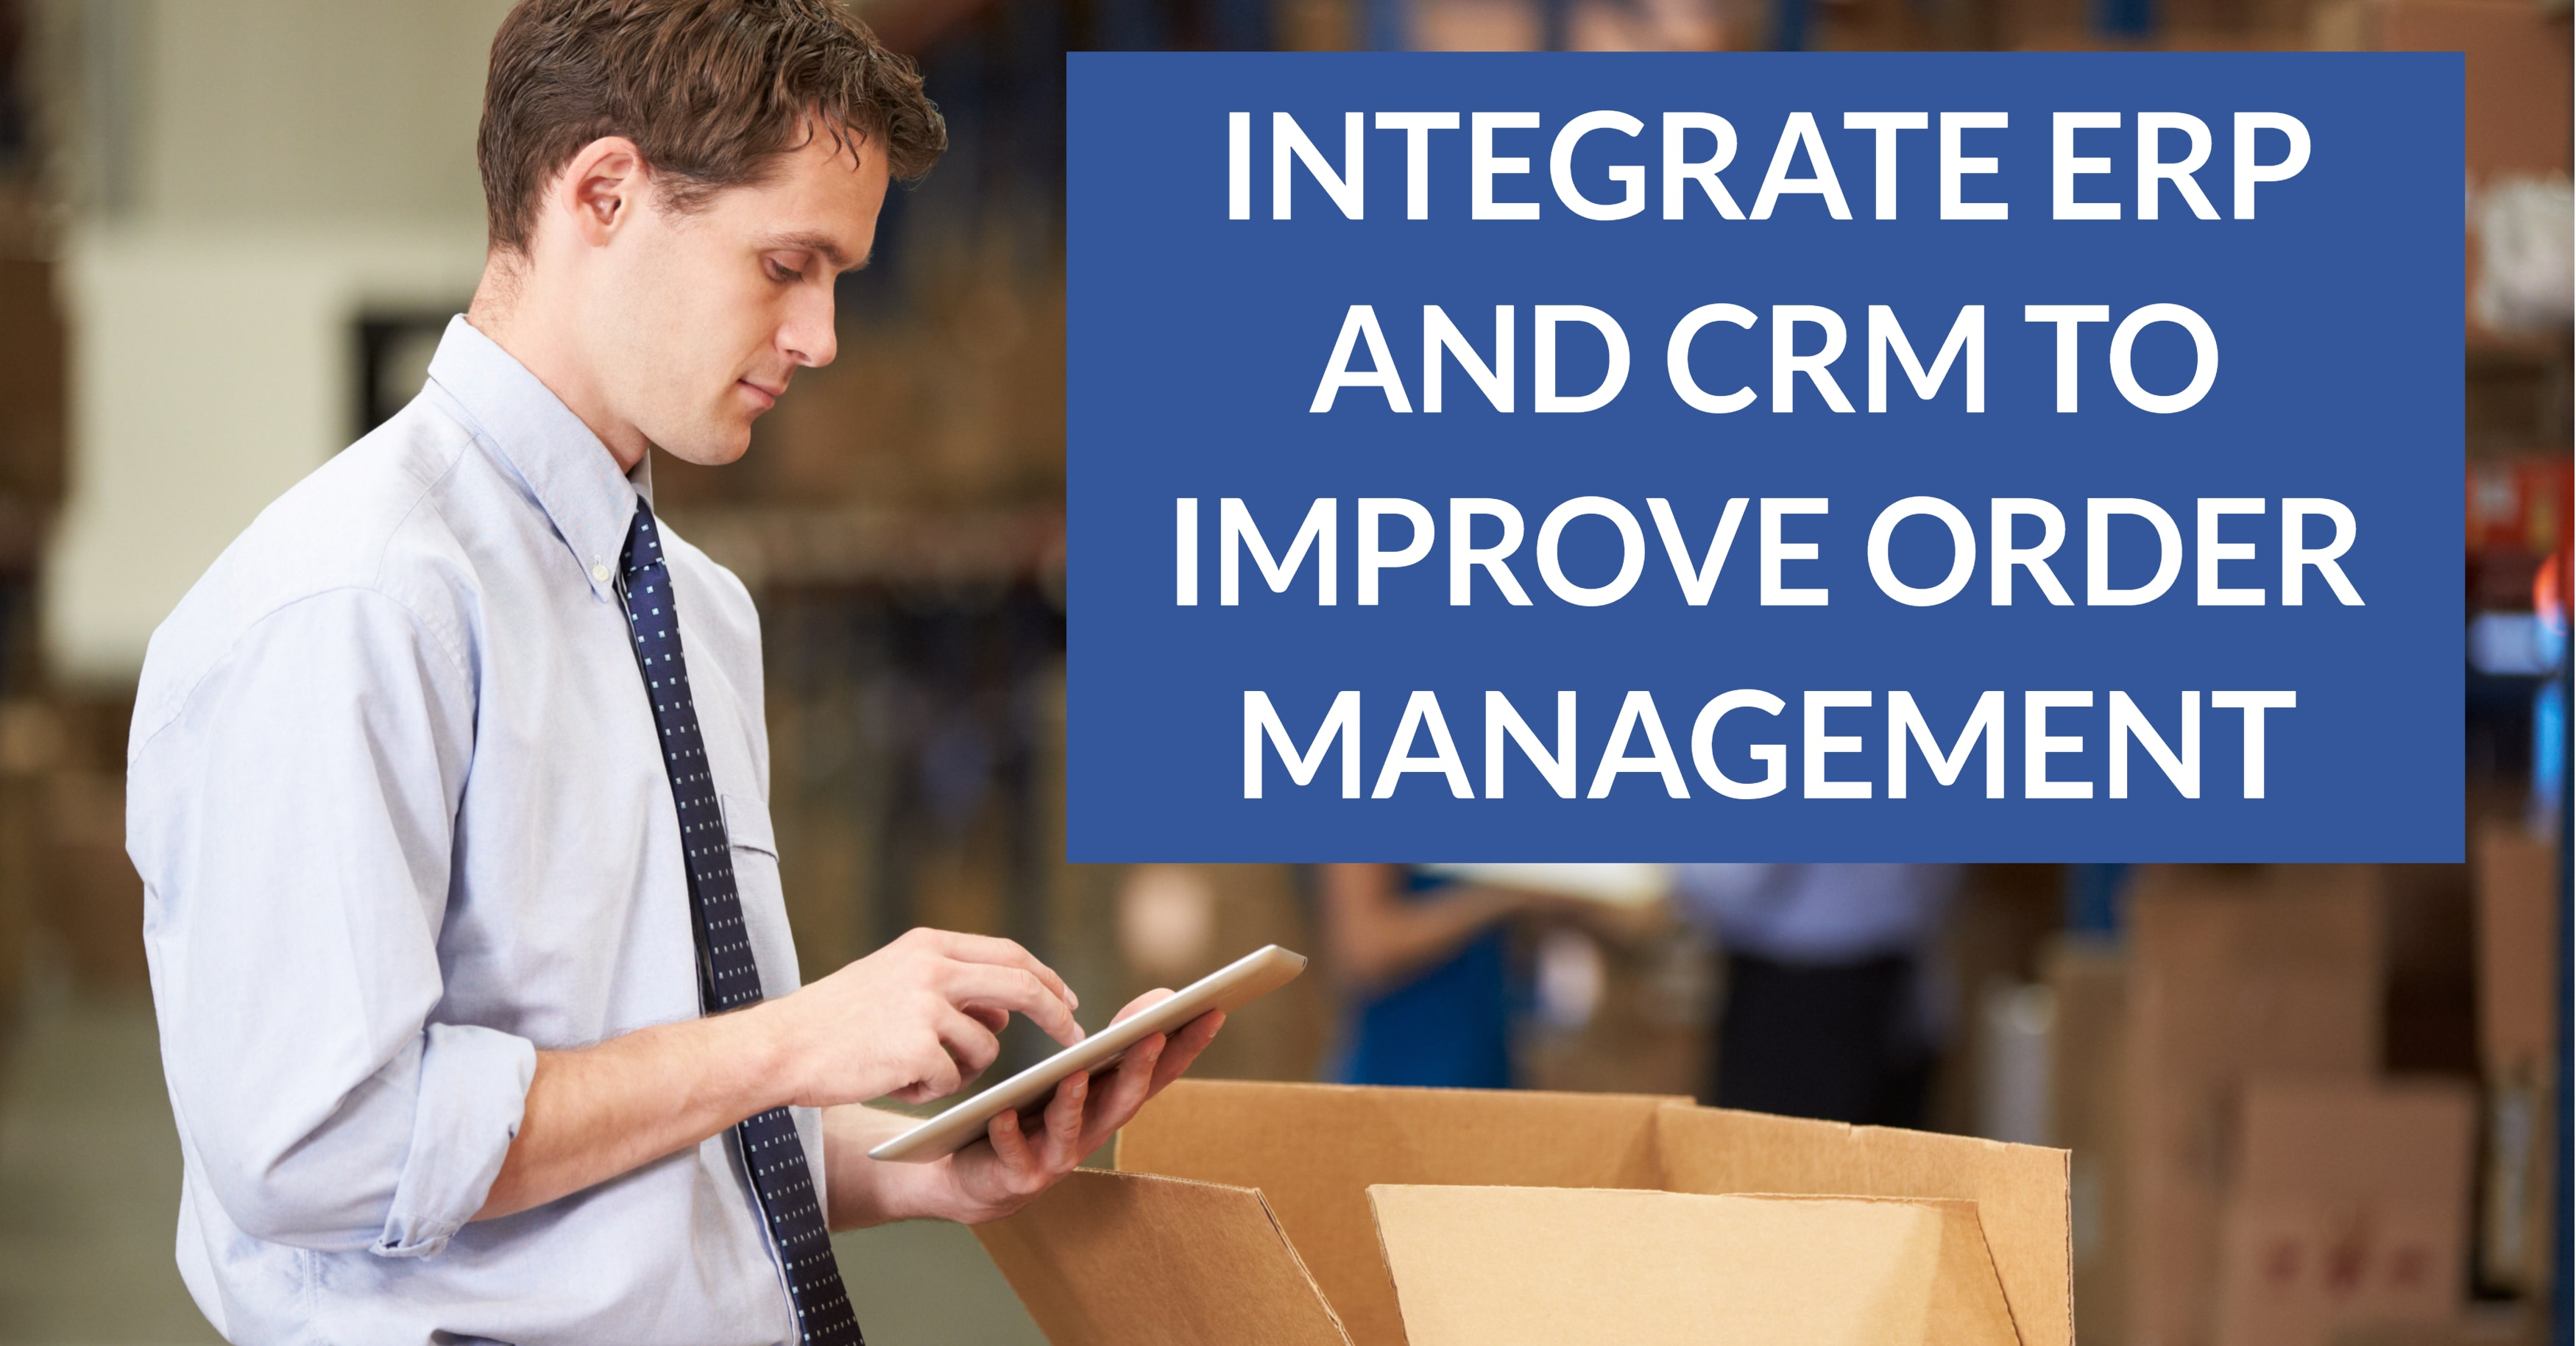 Integrate ERP and CRM to Improve Order Management